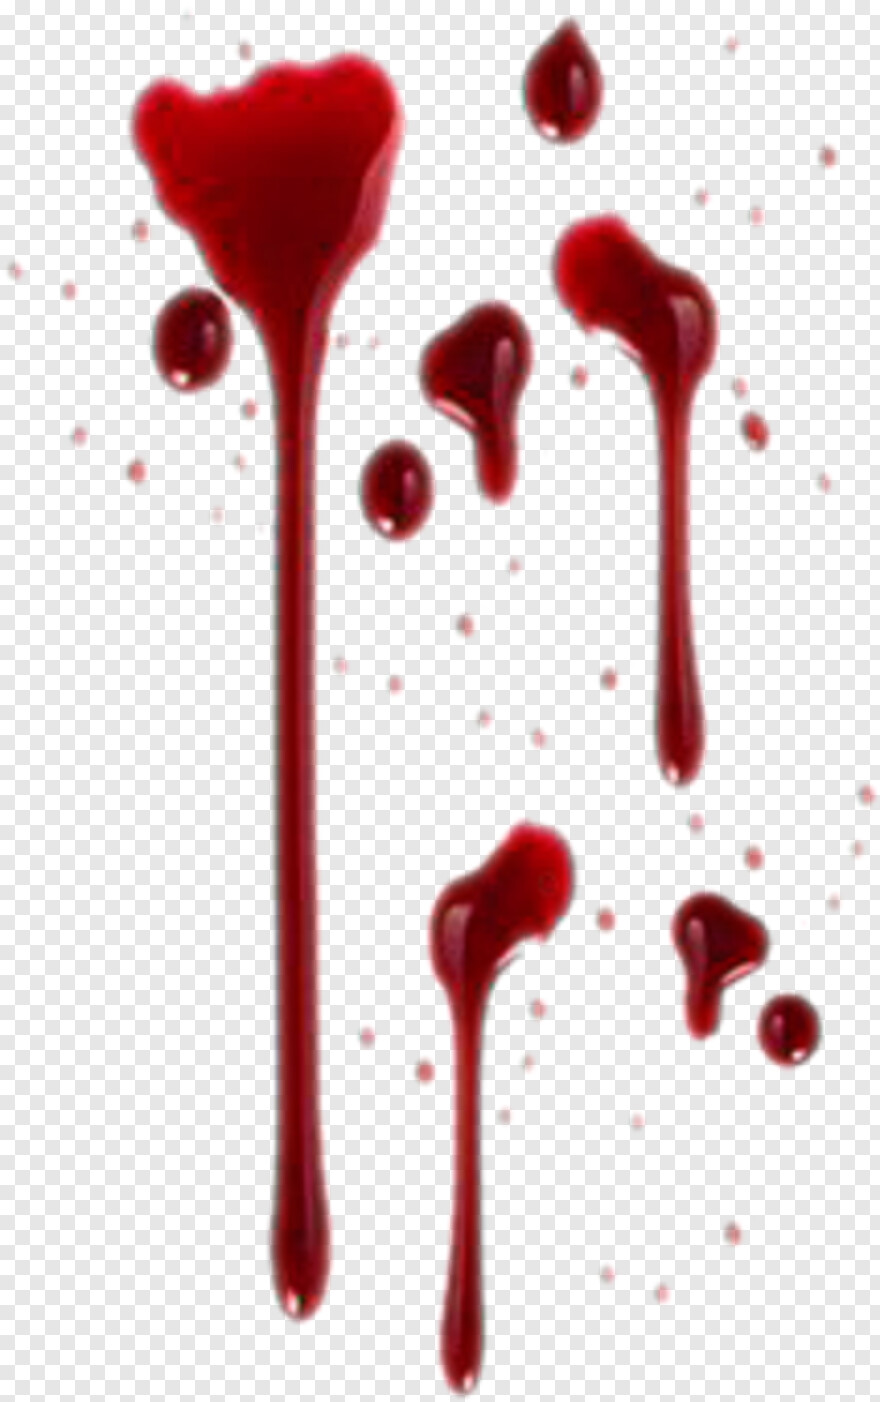 Blood Dripping Drawing - Bing images